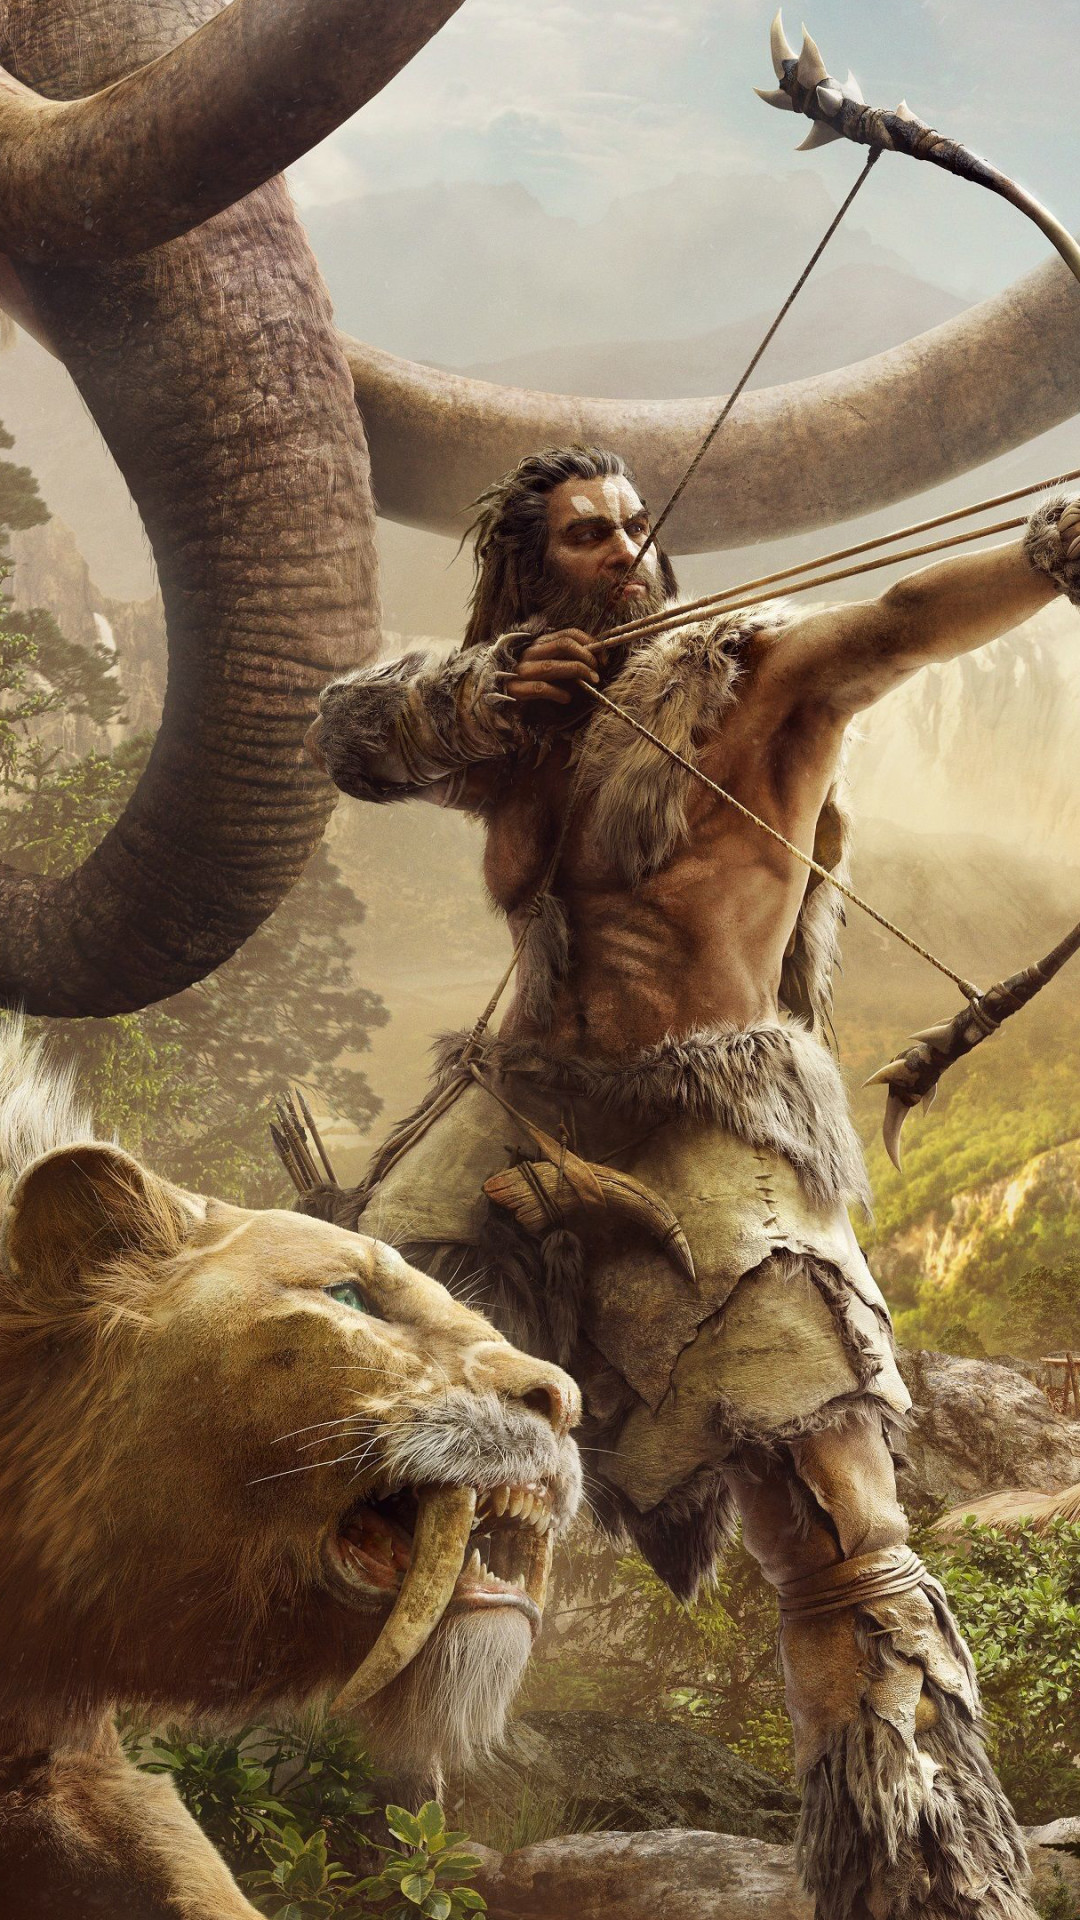 Supreme Girl Iphone Wallpaper Far Cry Primal Wallpapers 85 Images